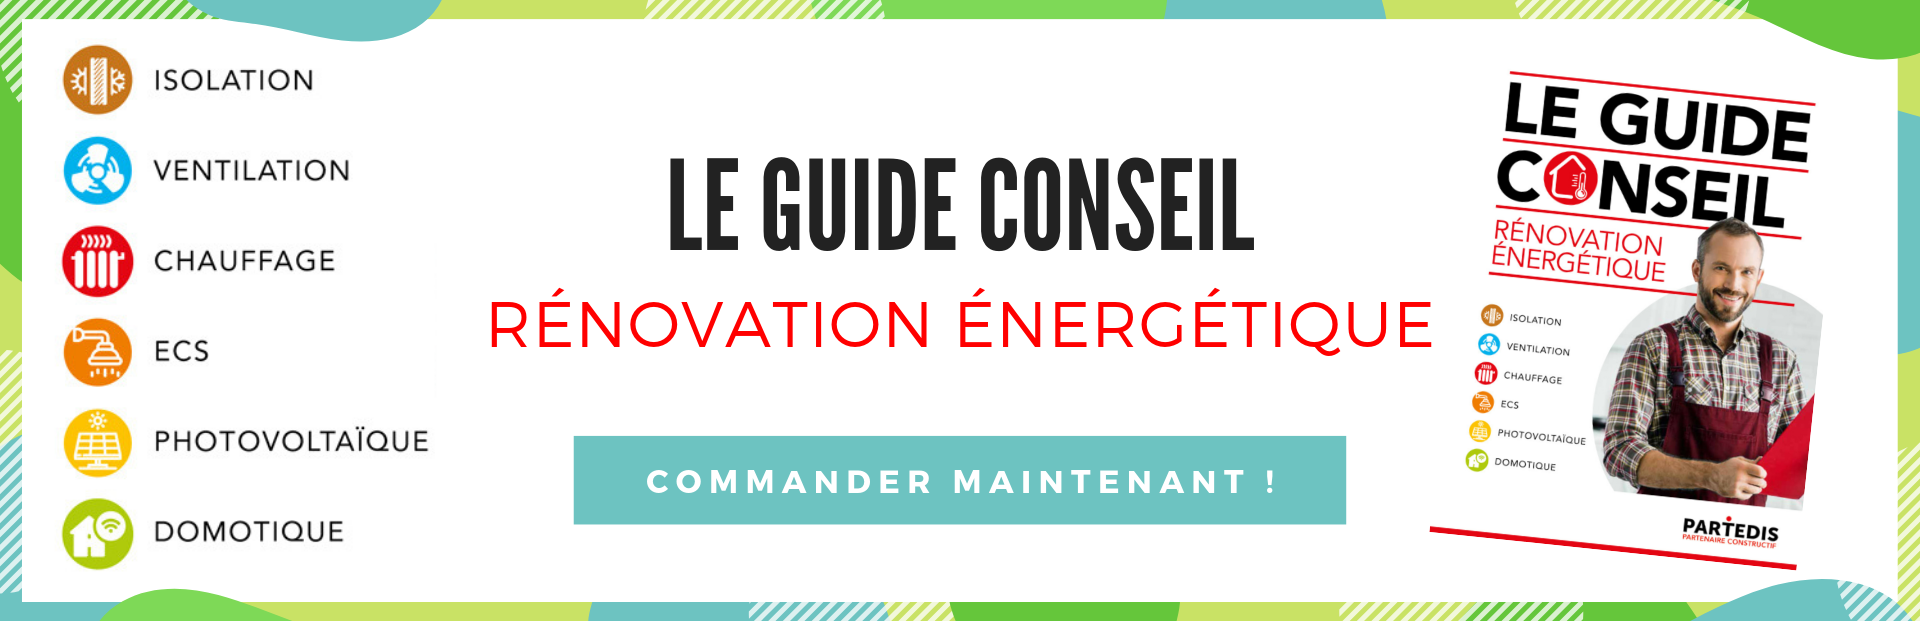 guide-renovation-energetique